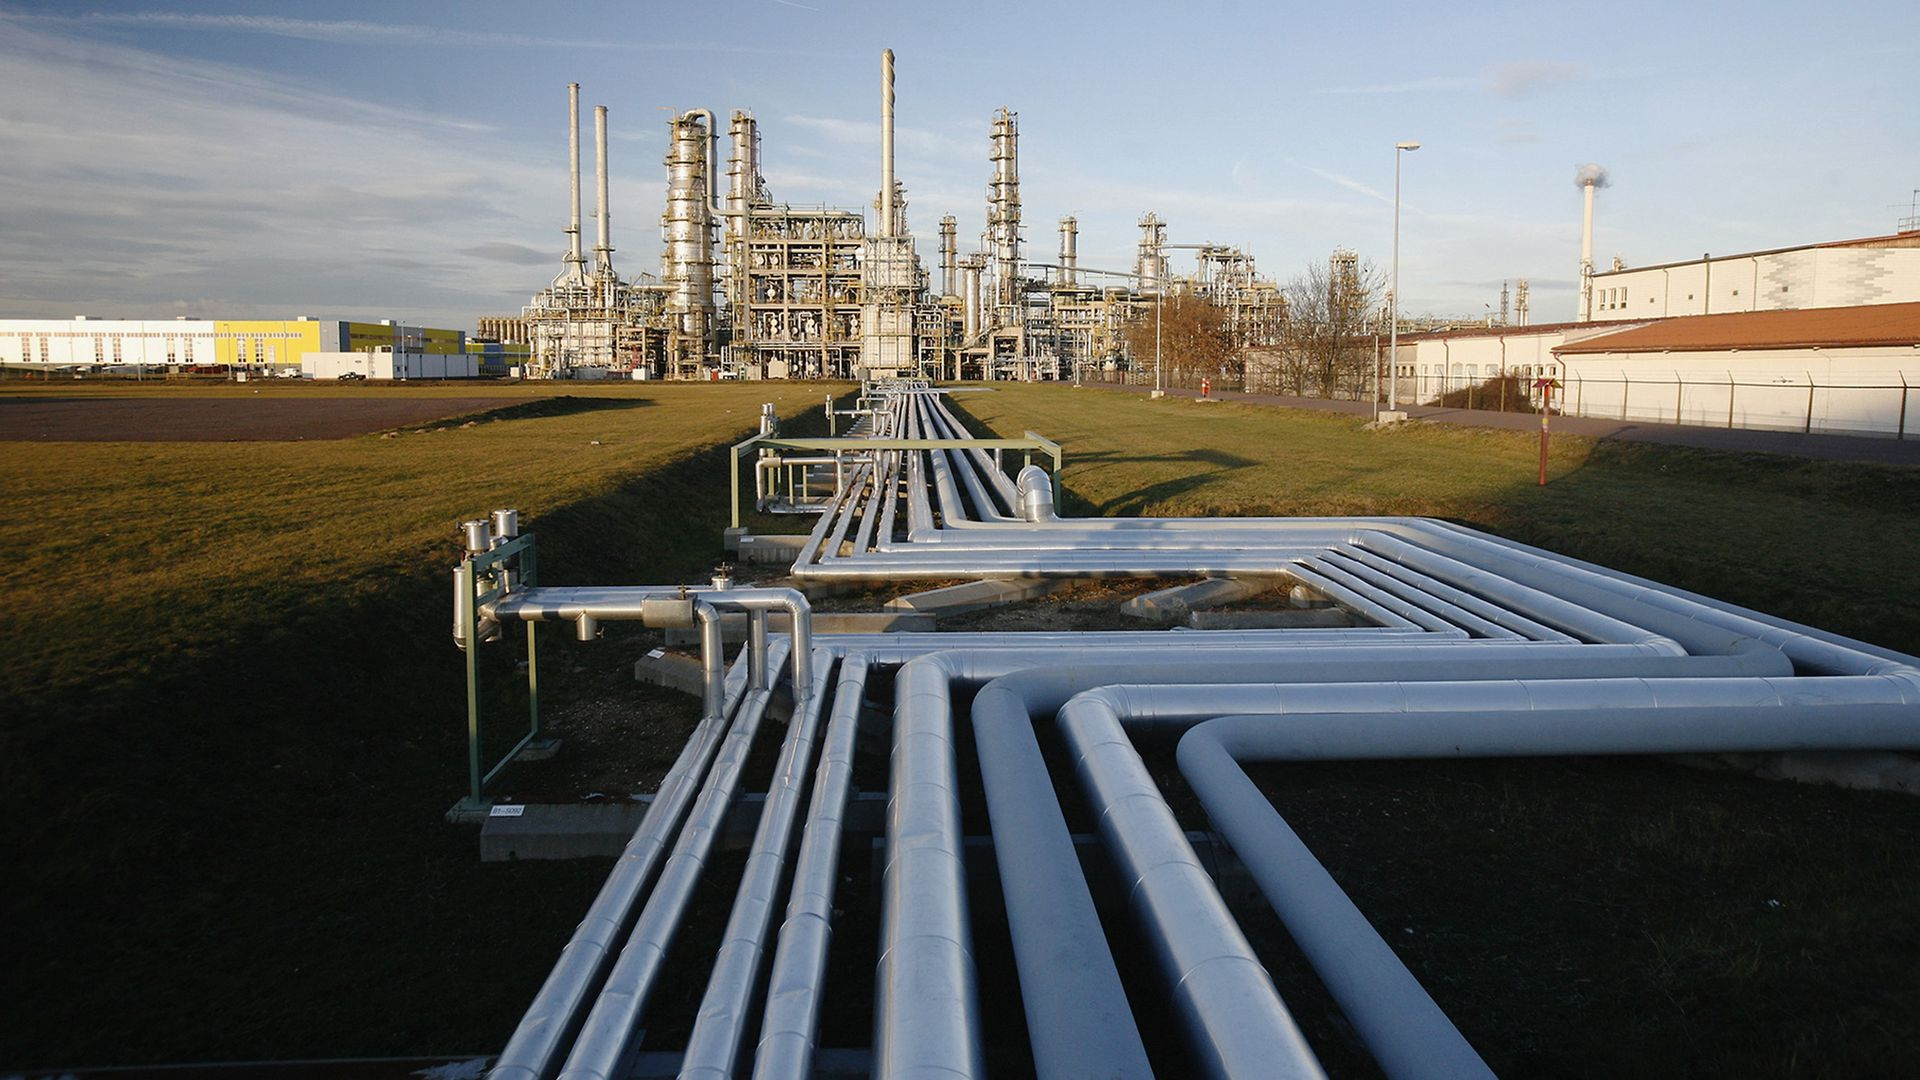 Oil pipelines at a refinery